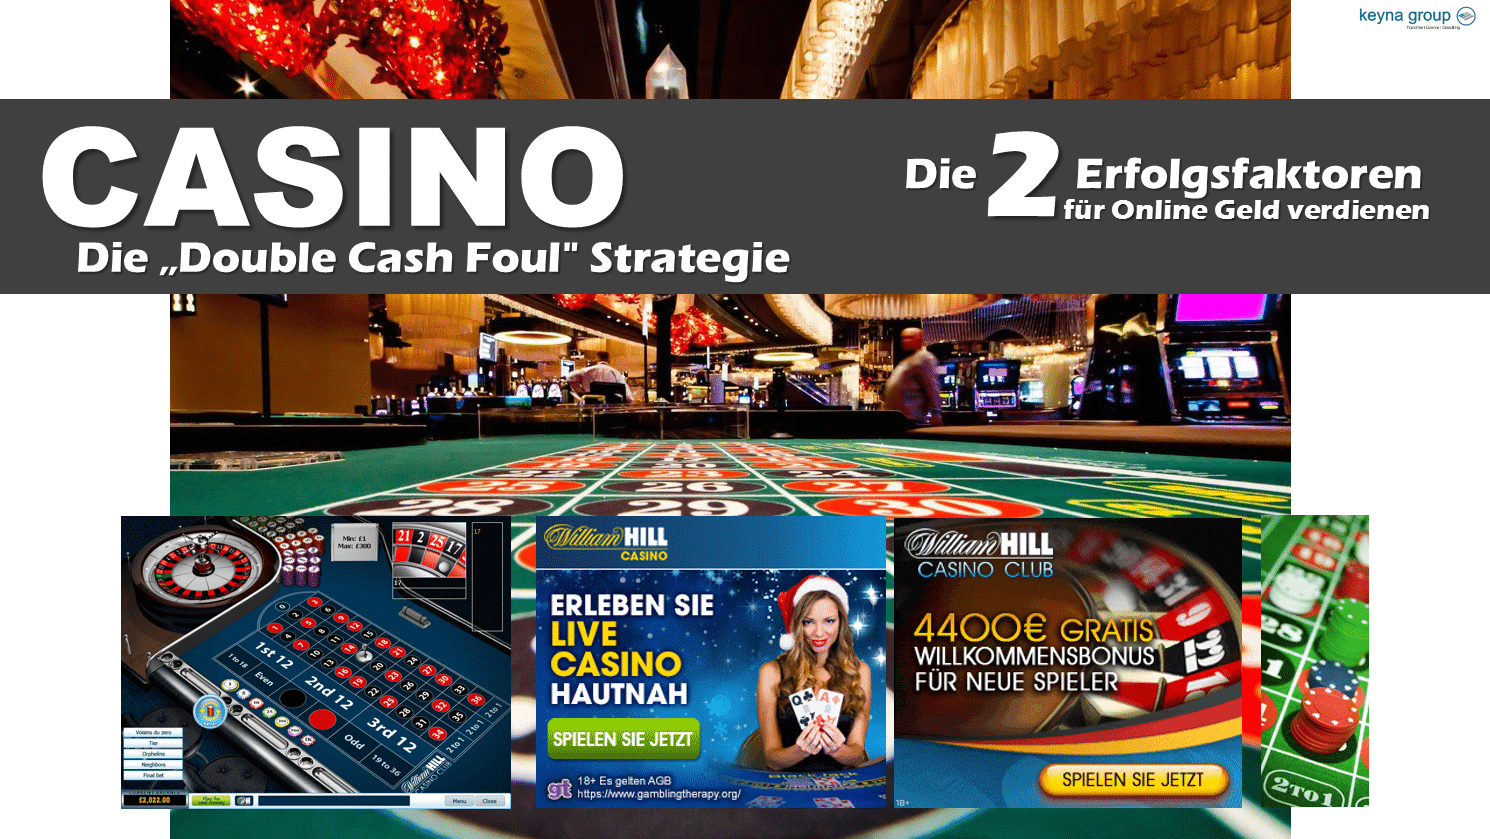 geld-verdienen-casino-double-cash-foul-strategie